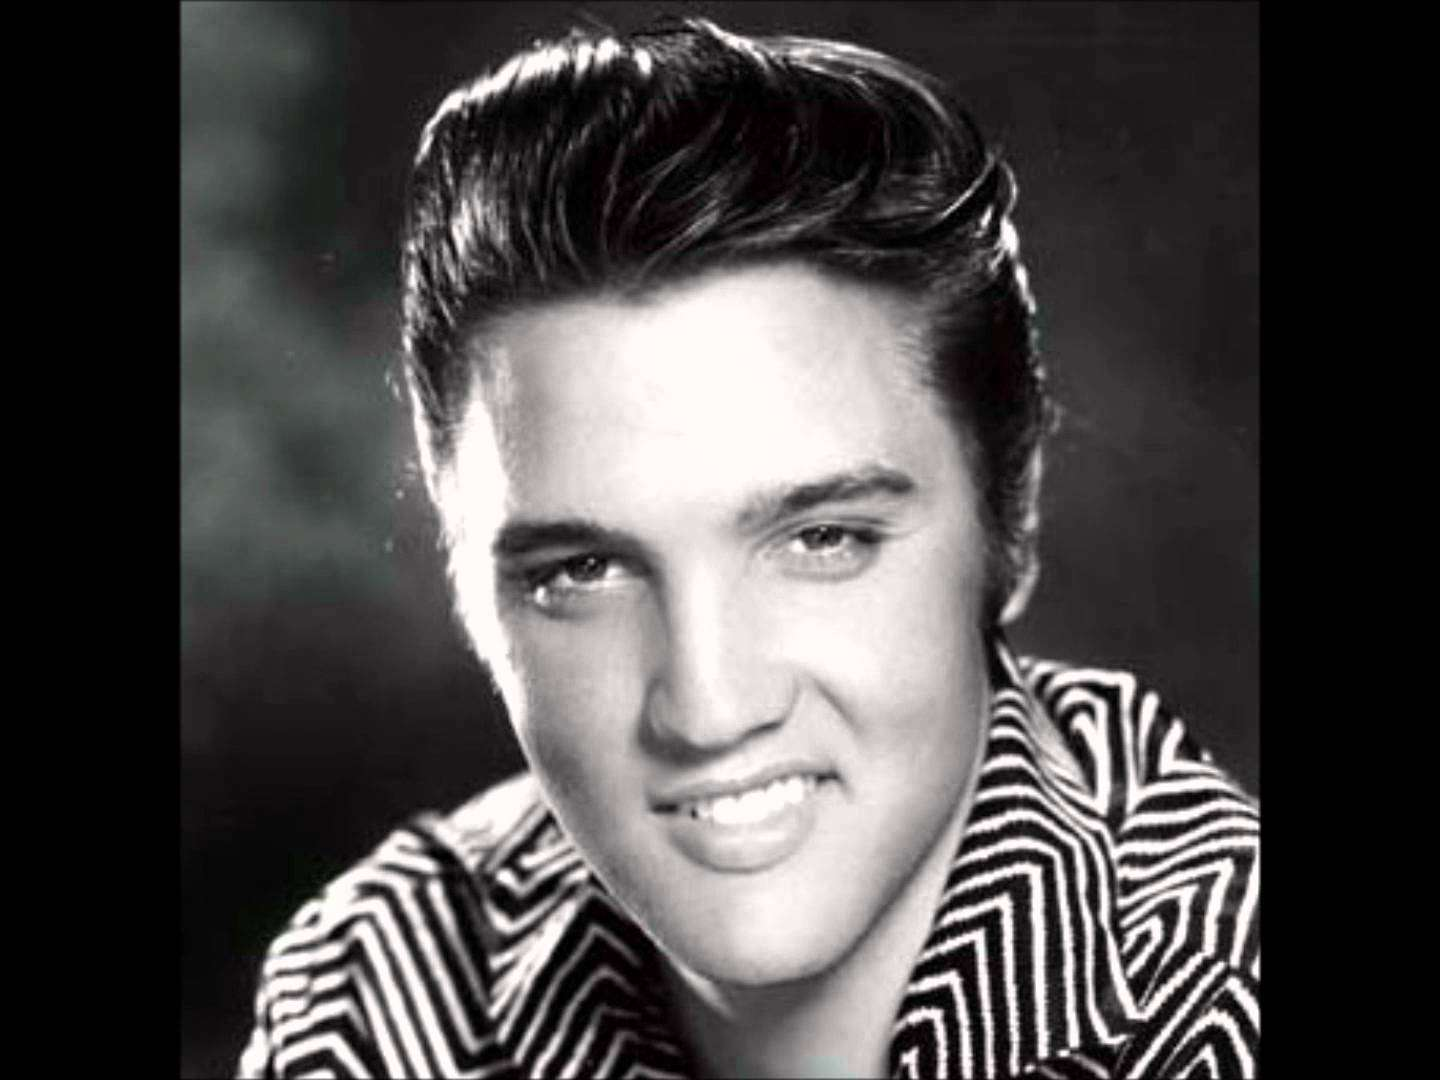 Elvis Presley - My Way - YouTube